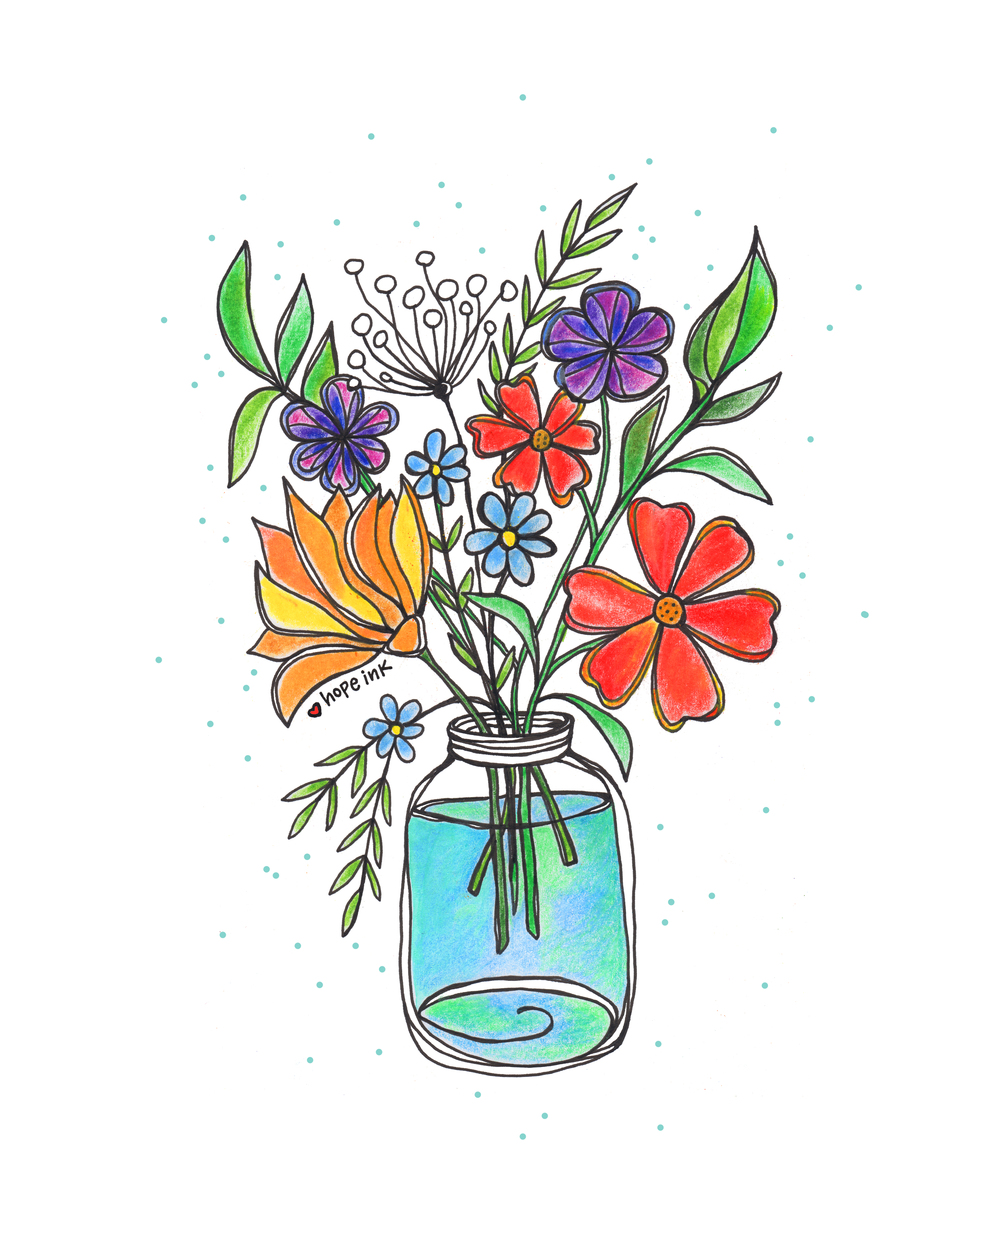 Wildflowers Illustration Hope Ink.jpg